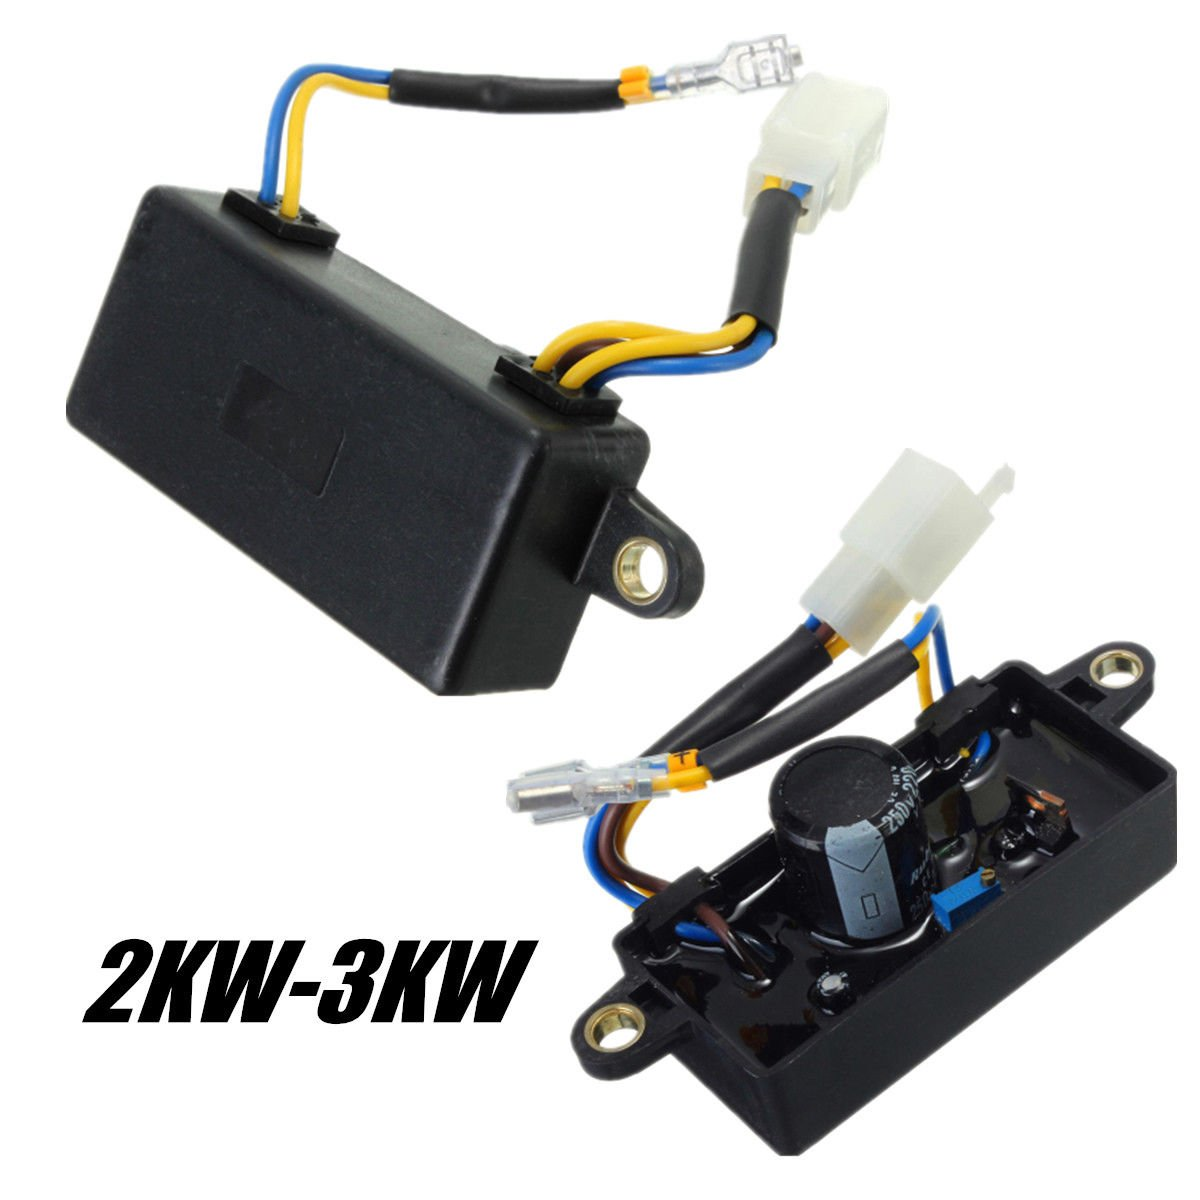 yongy AVR Automatic Voltage Regulator Rectifier for 2KW-3KW Generator Square Style